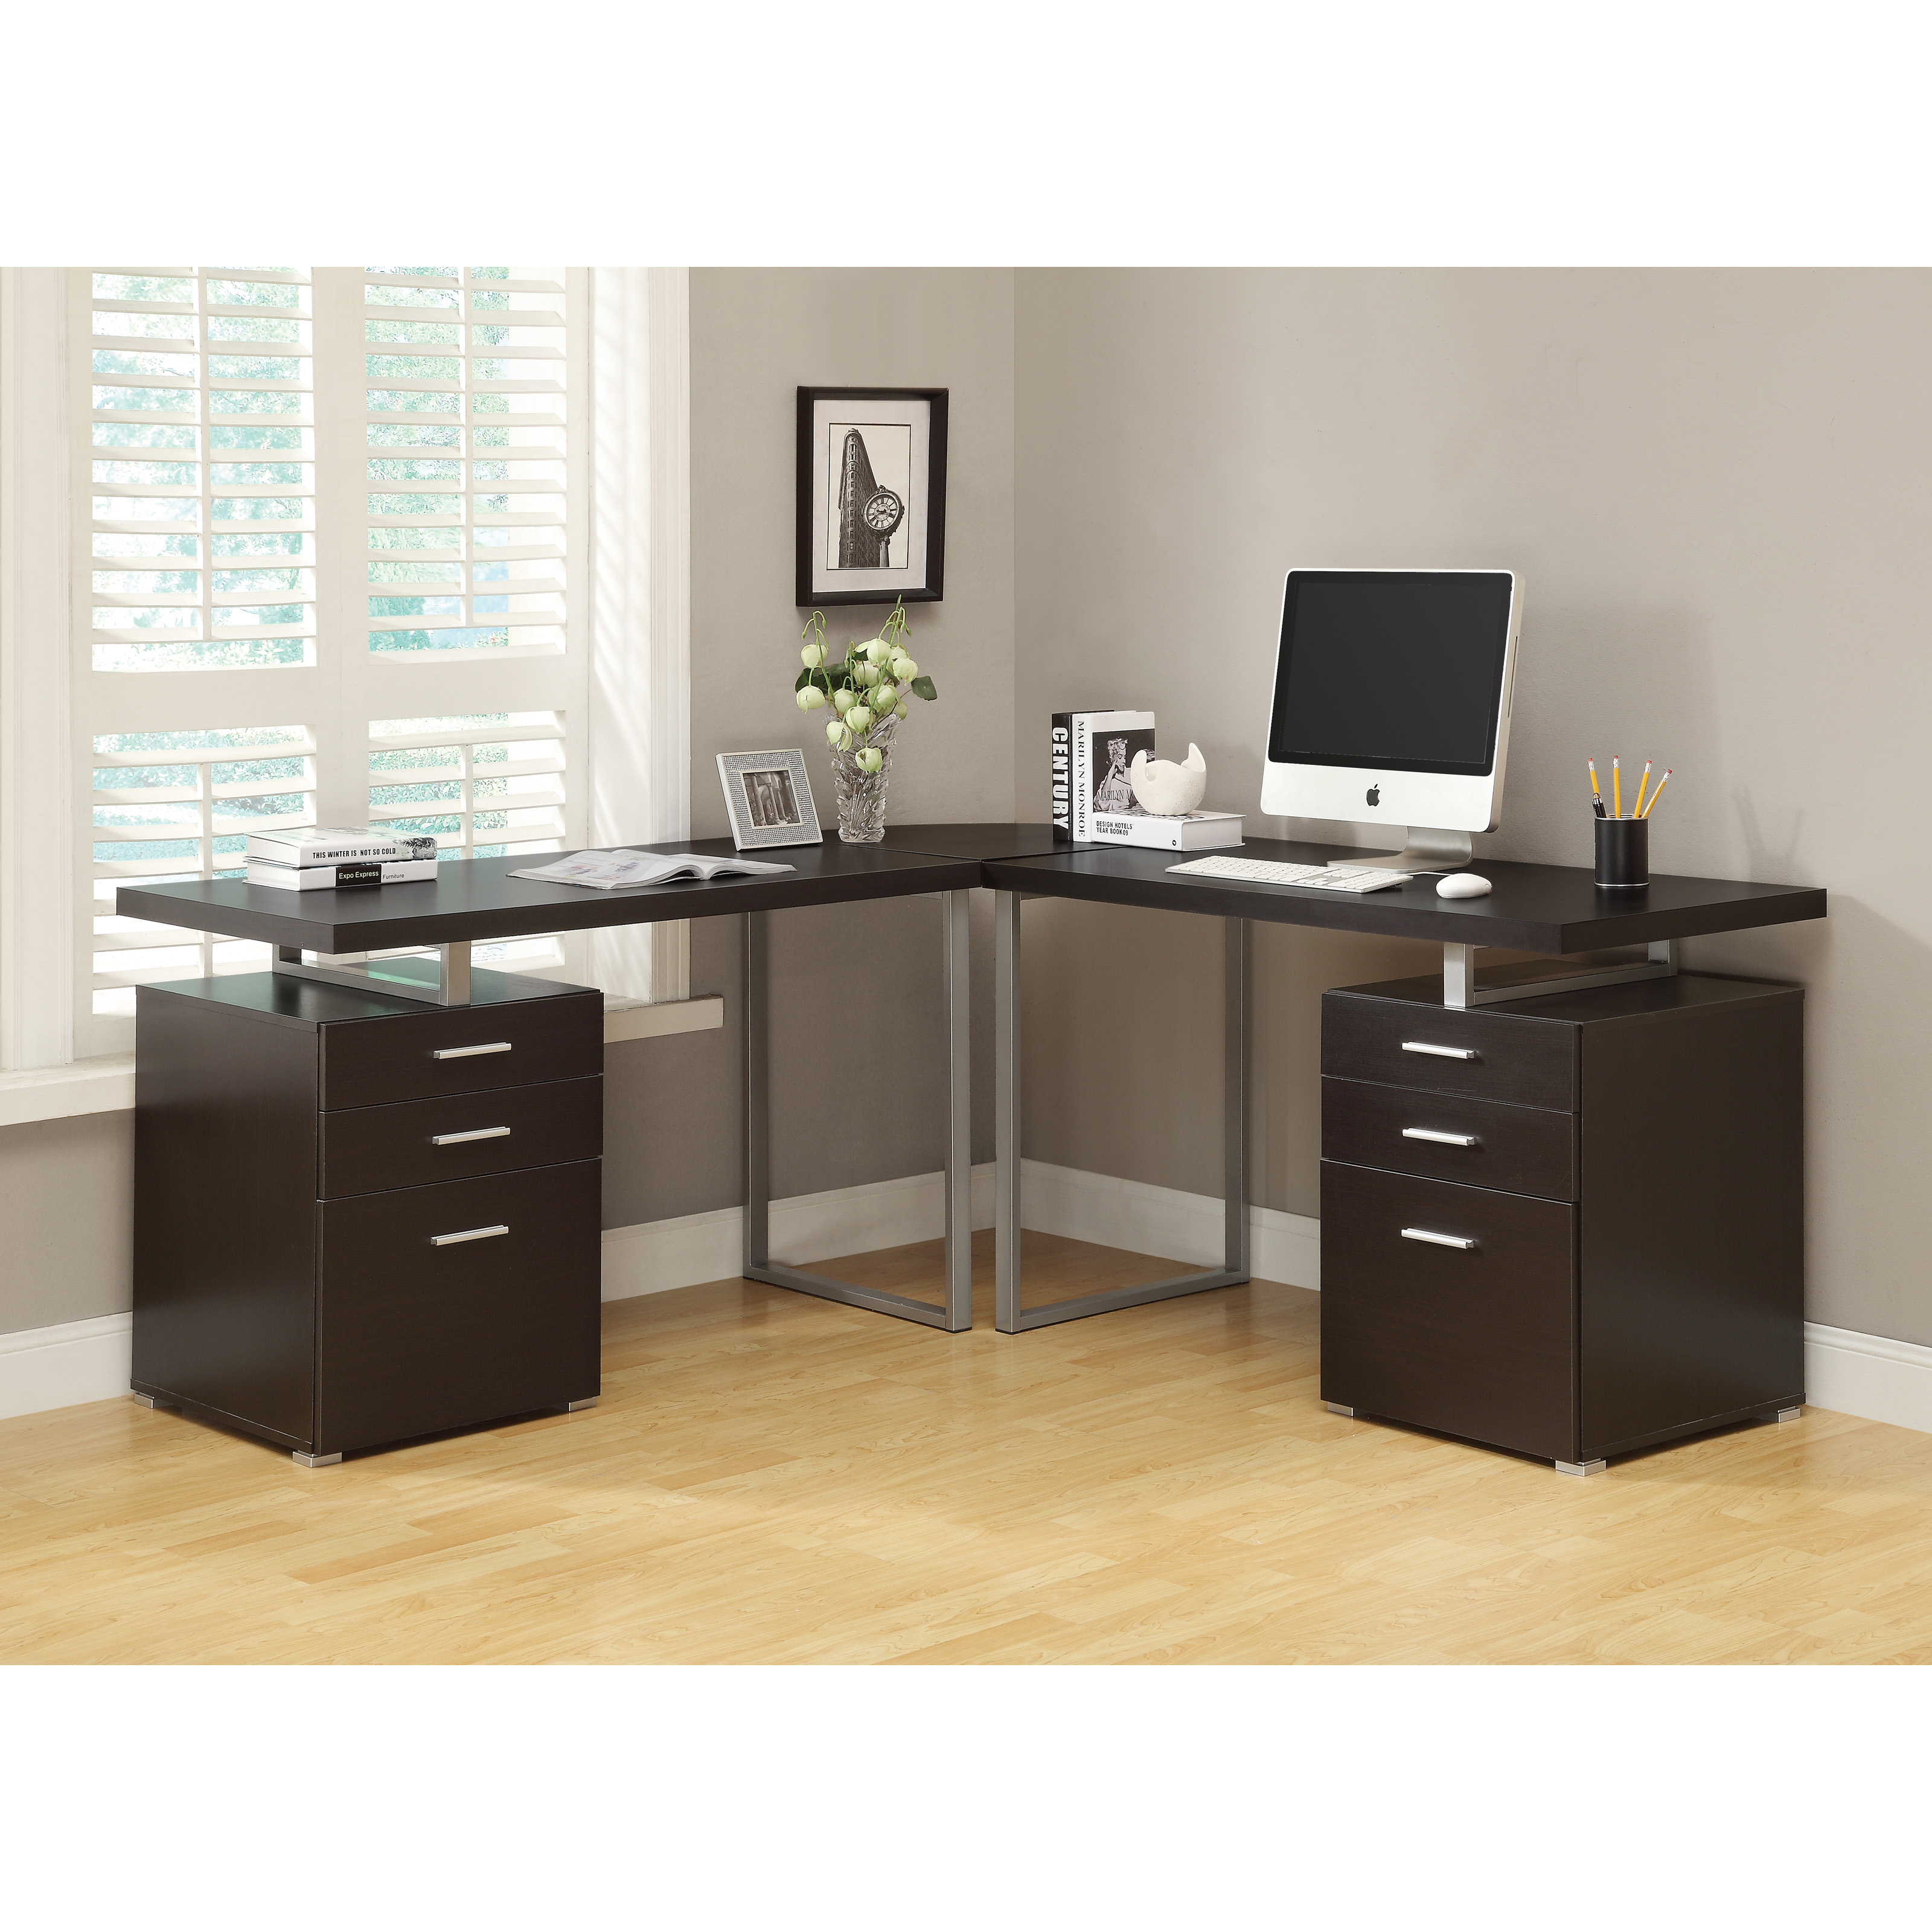 Monarch Hollow Core Left Or Right Facing 48 In Desk Cappuccino Hayneedle